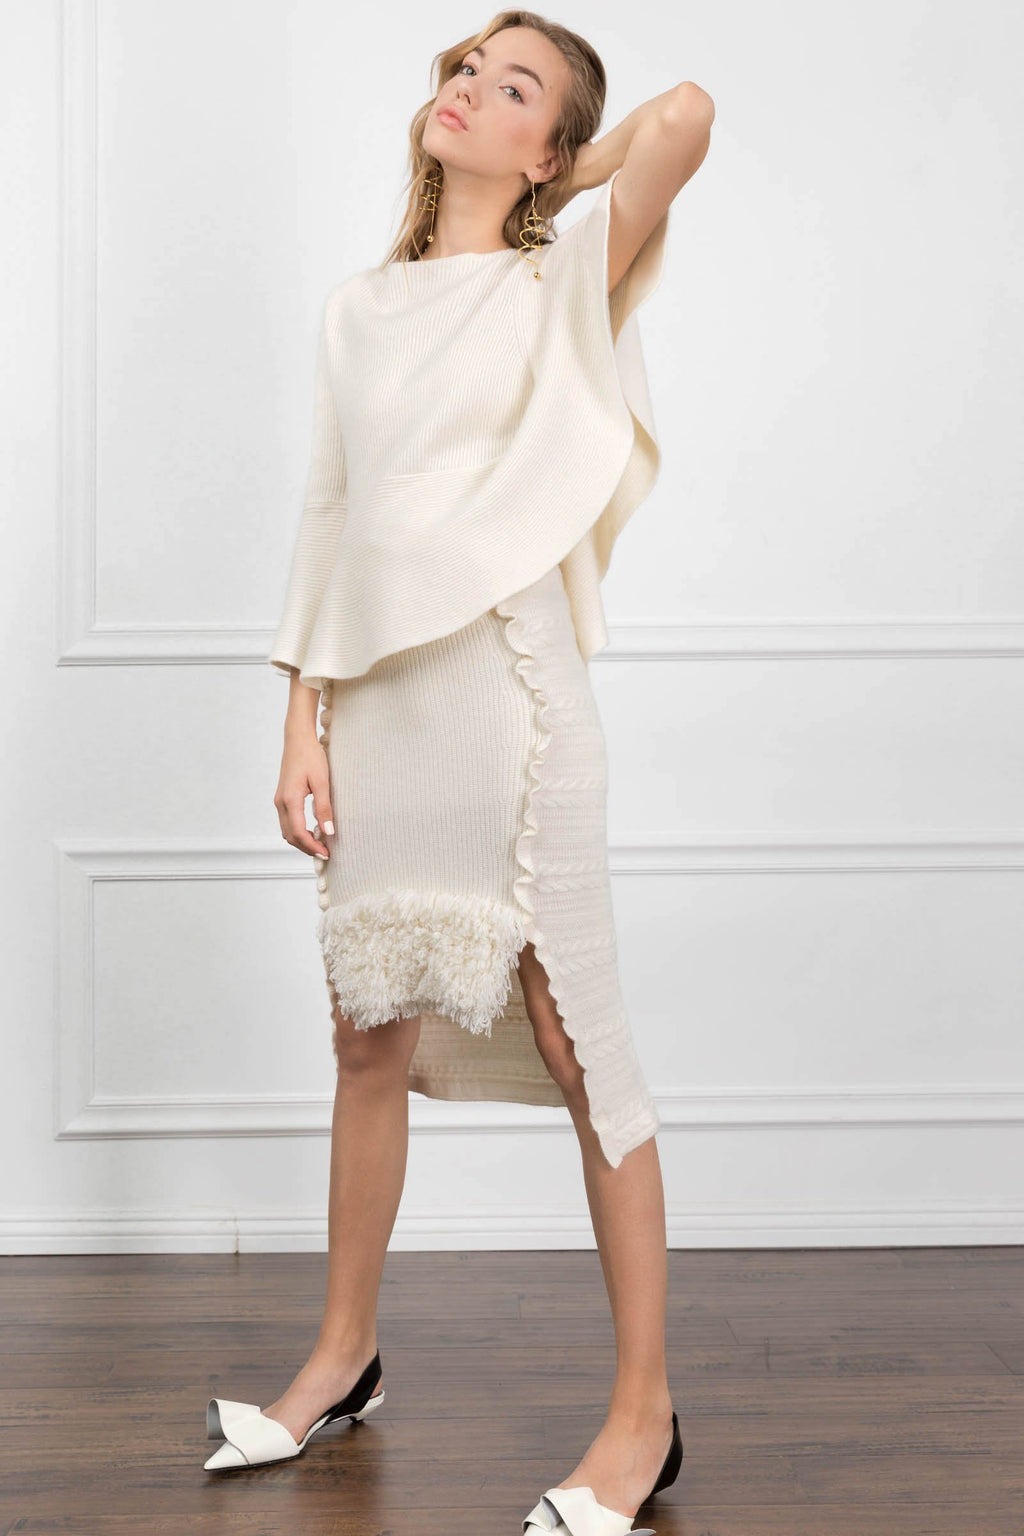 Sienna Knit Top + Skirt Set in Skirts by J.ING - an L.A based women's fashion line